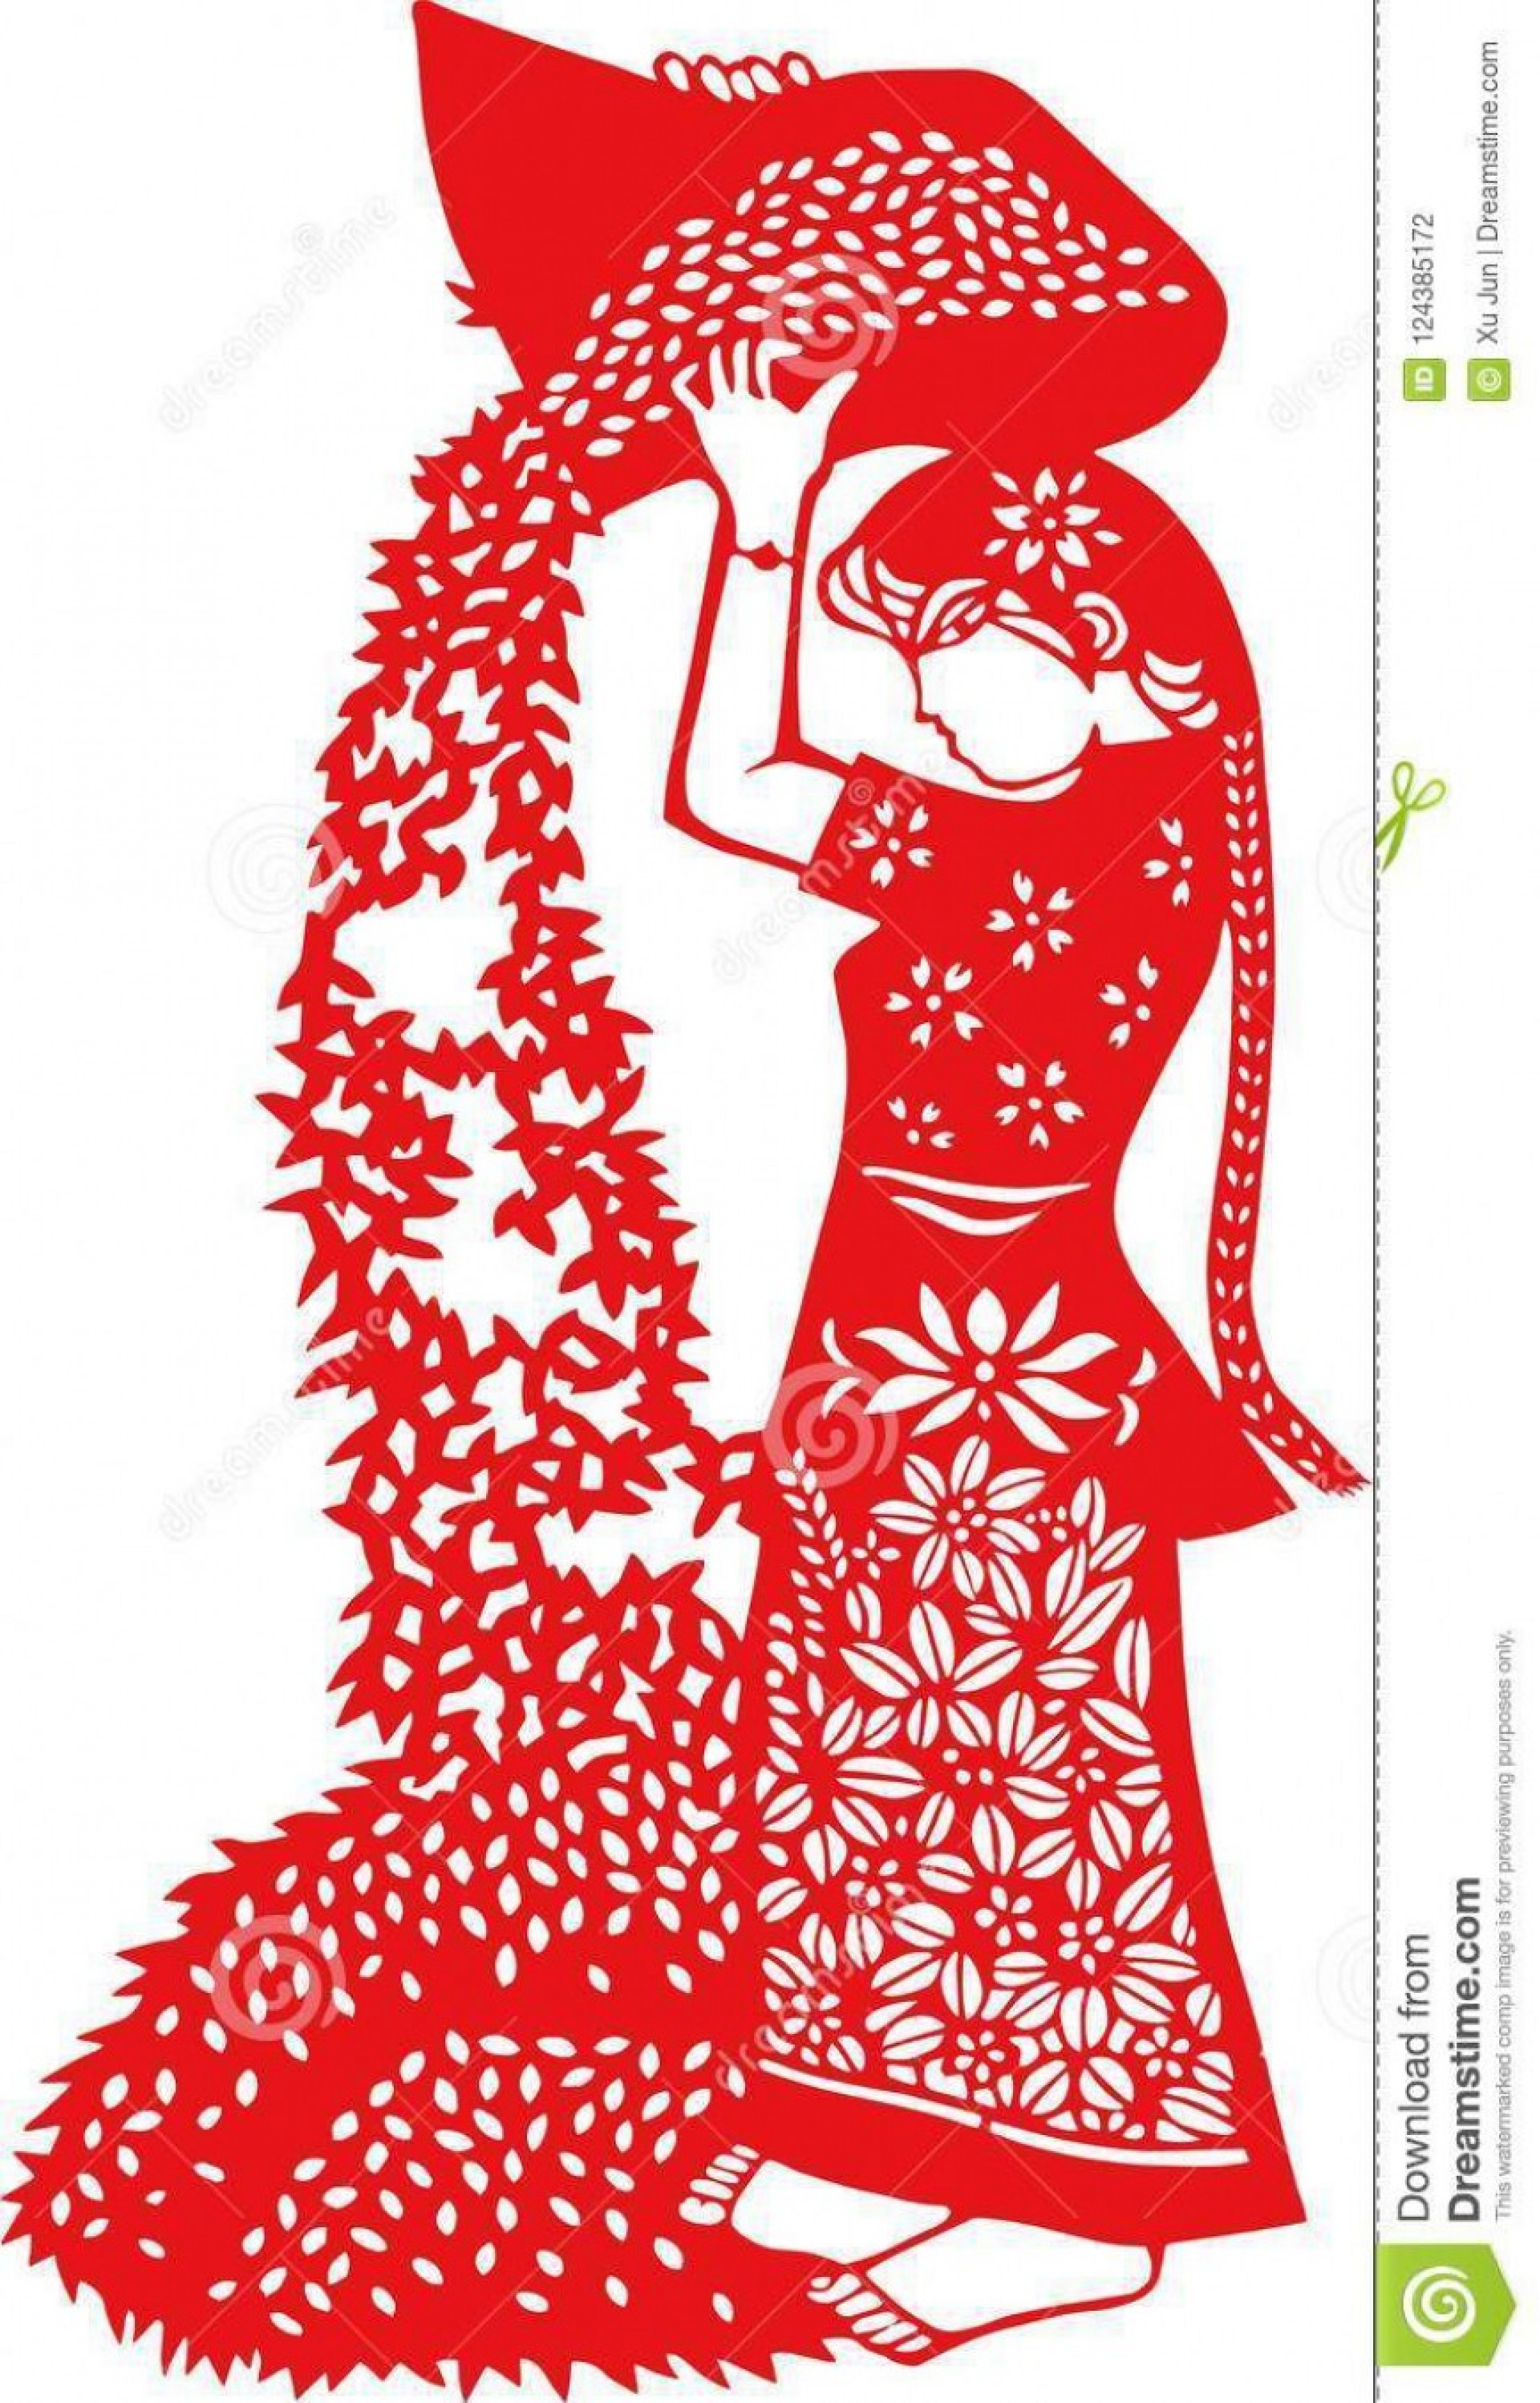 000 Simple Chinese Paper Cutting Template Inspiration  Pdf Dragon1920